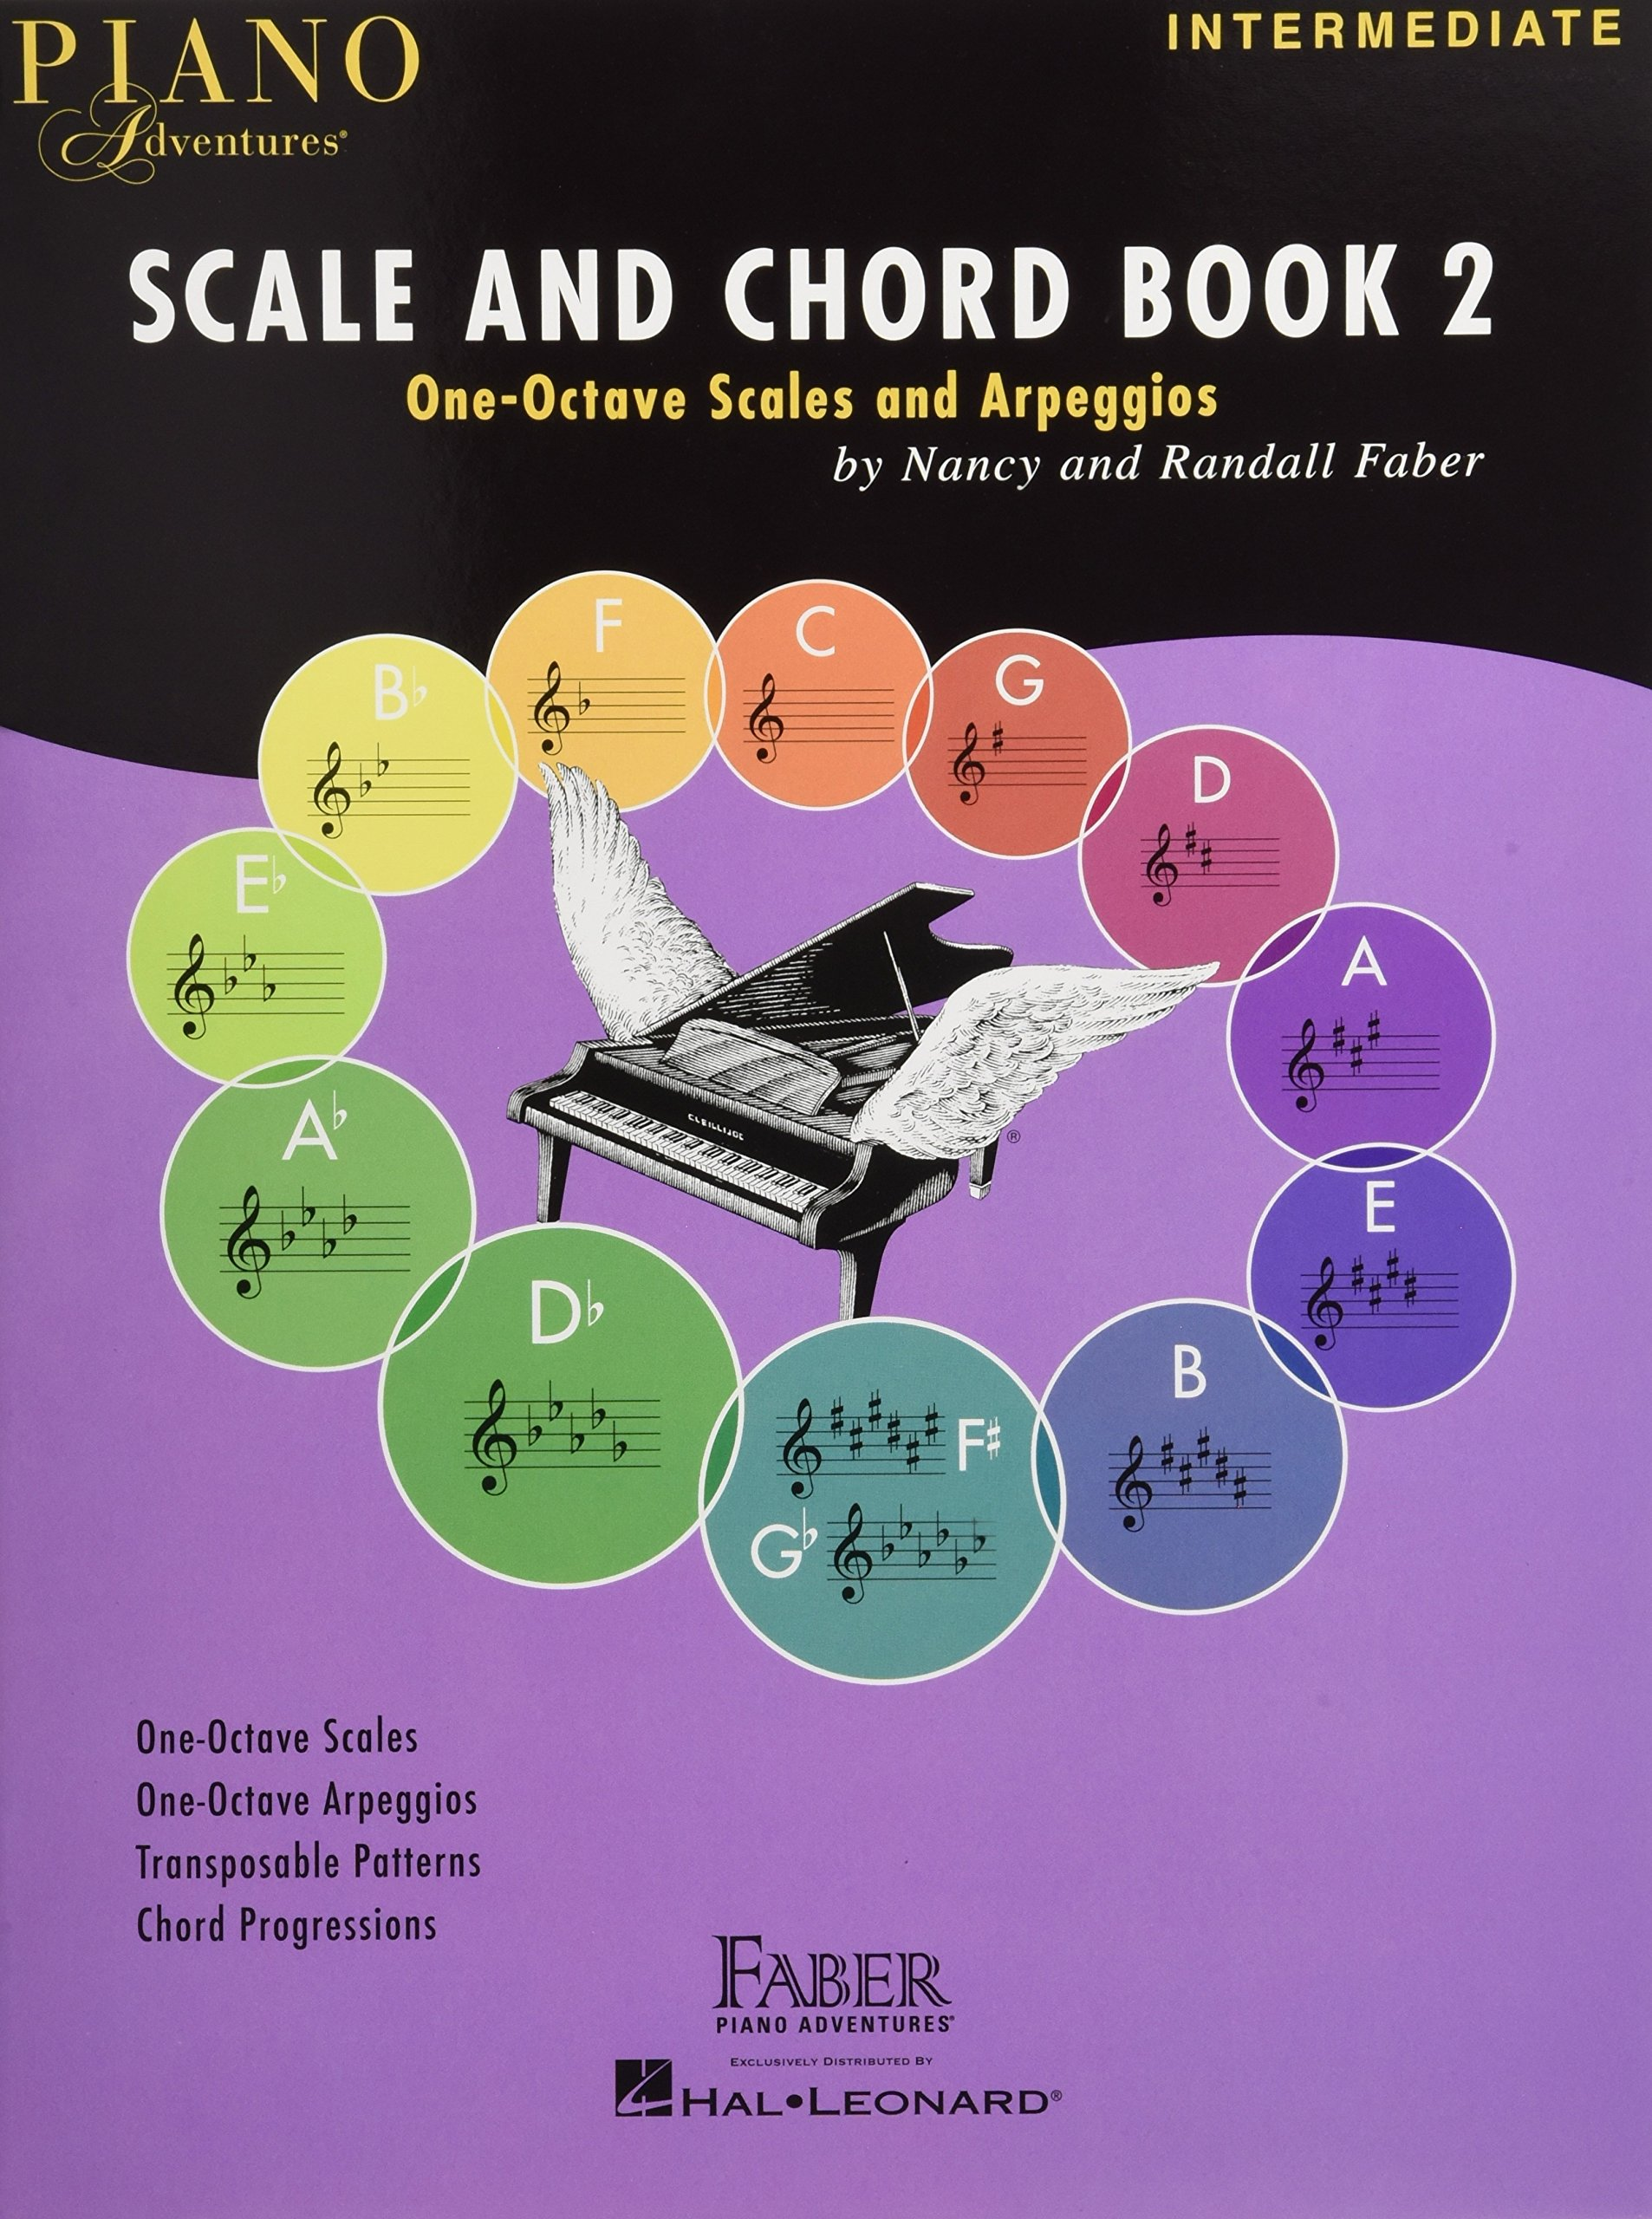 Download Piano Adventures Scale and Chord Book 2: One-Octave Scales and Chords ebook